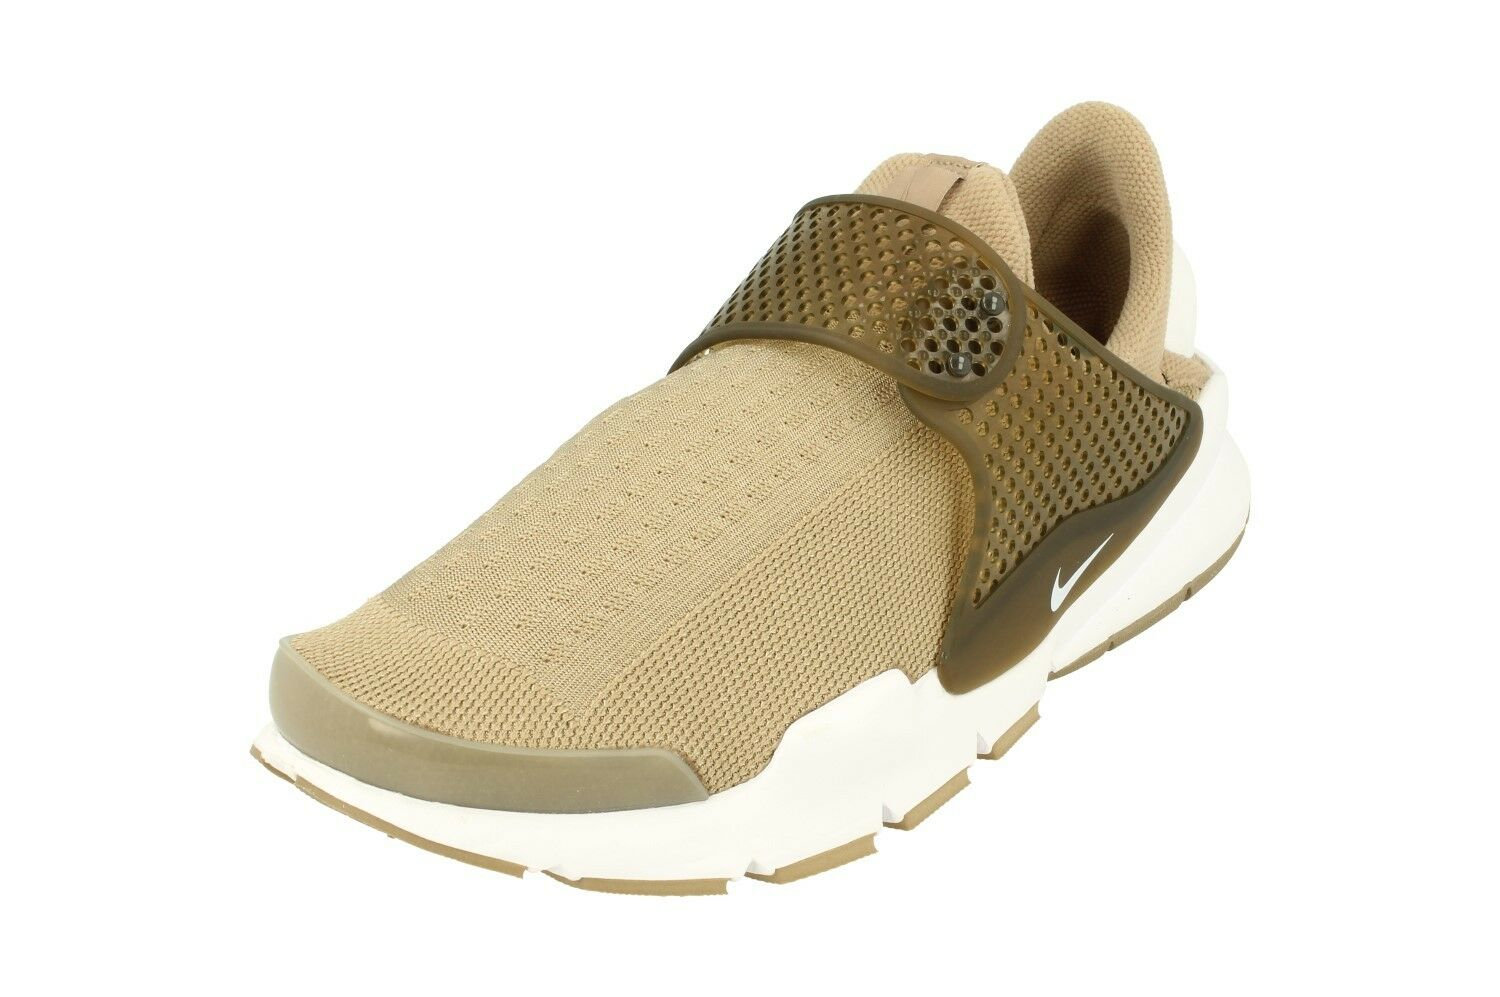 Nike Sock Dart Mens Sneakers Running Trainers 819686 200 Sneakers Mens Shoes f03830